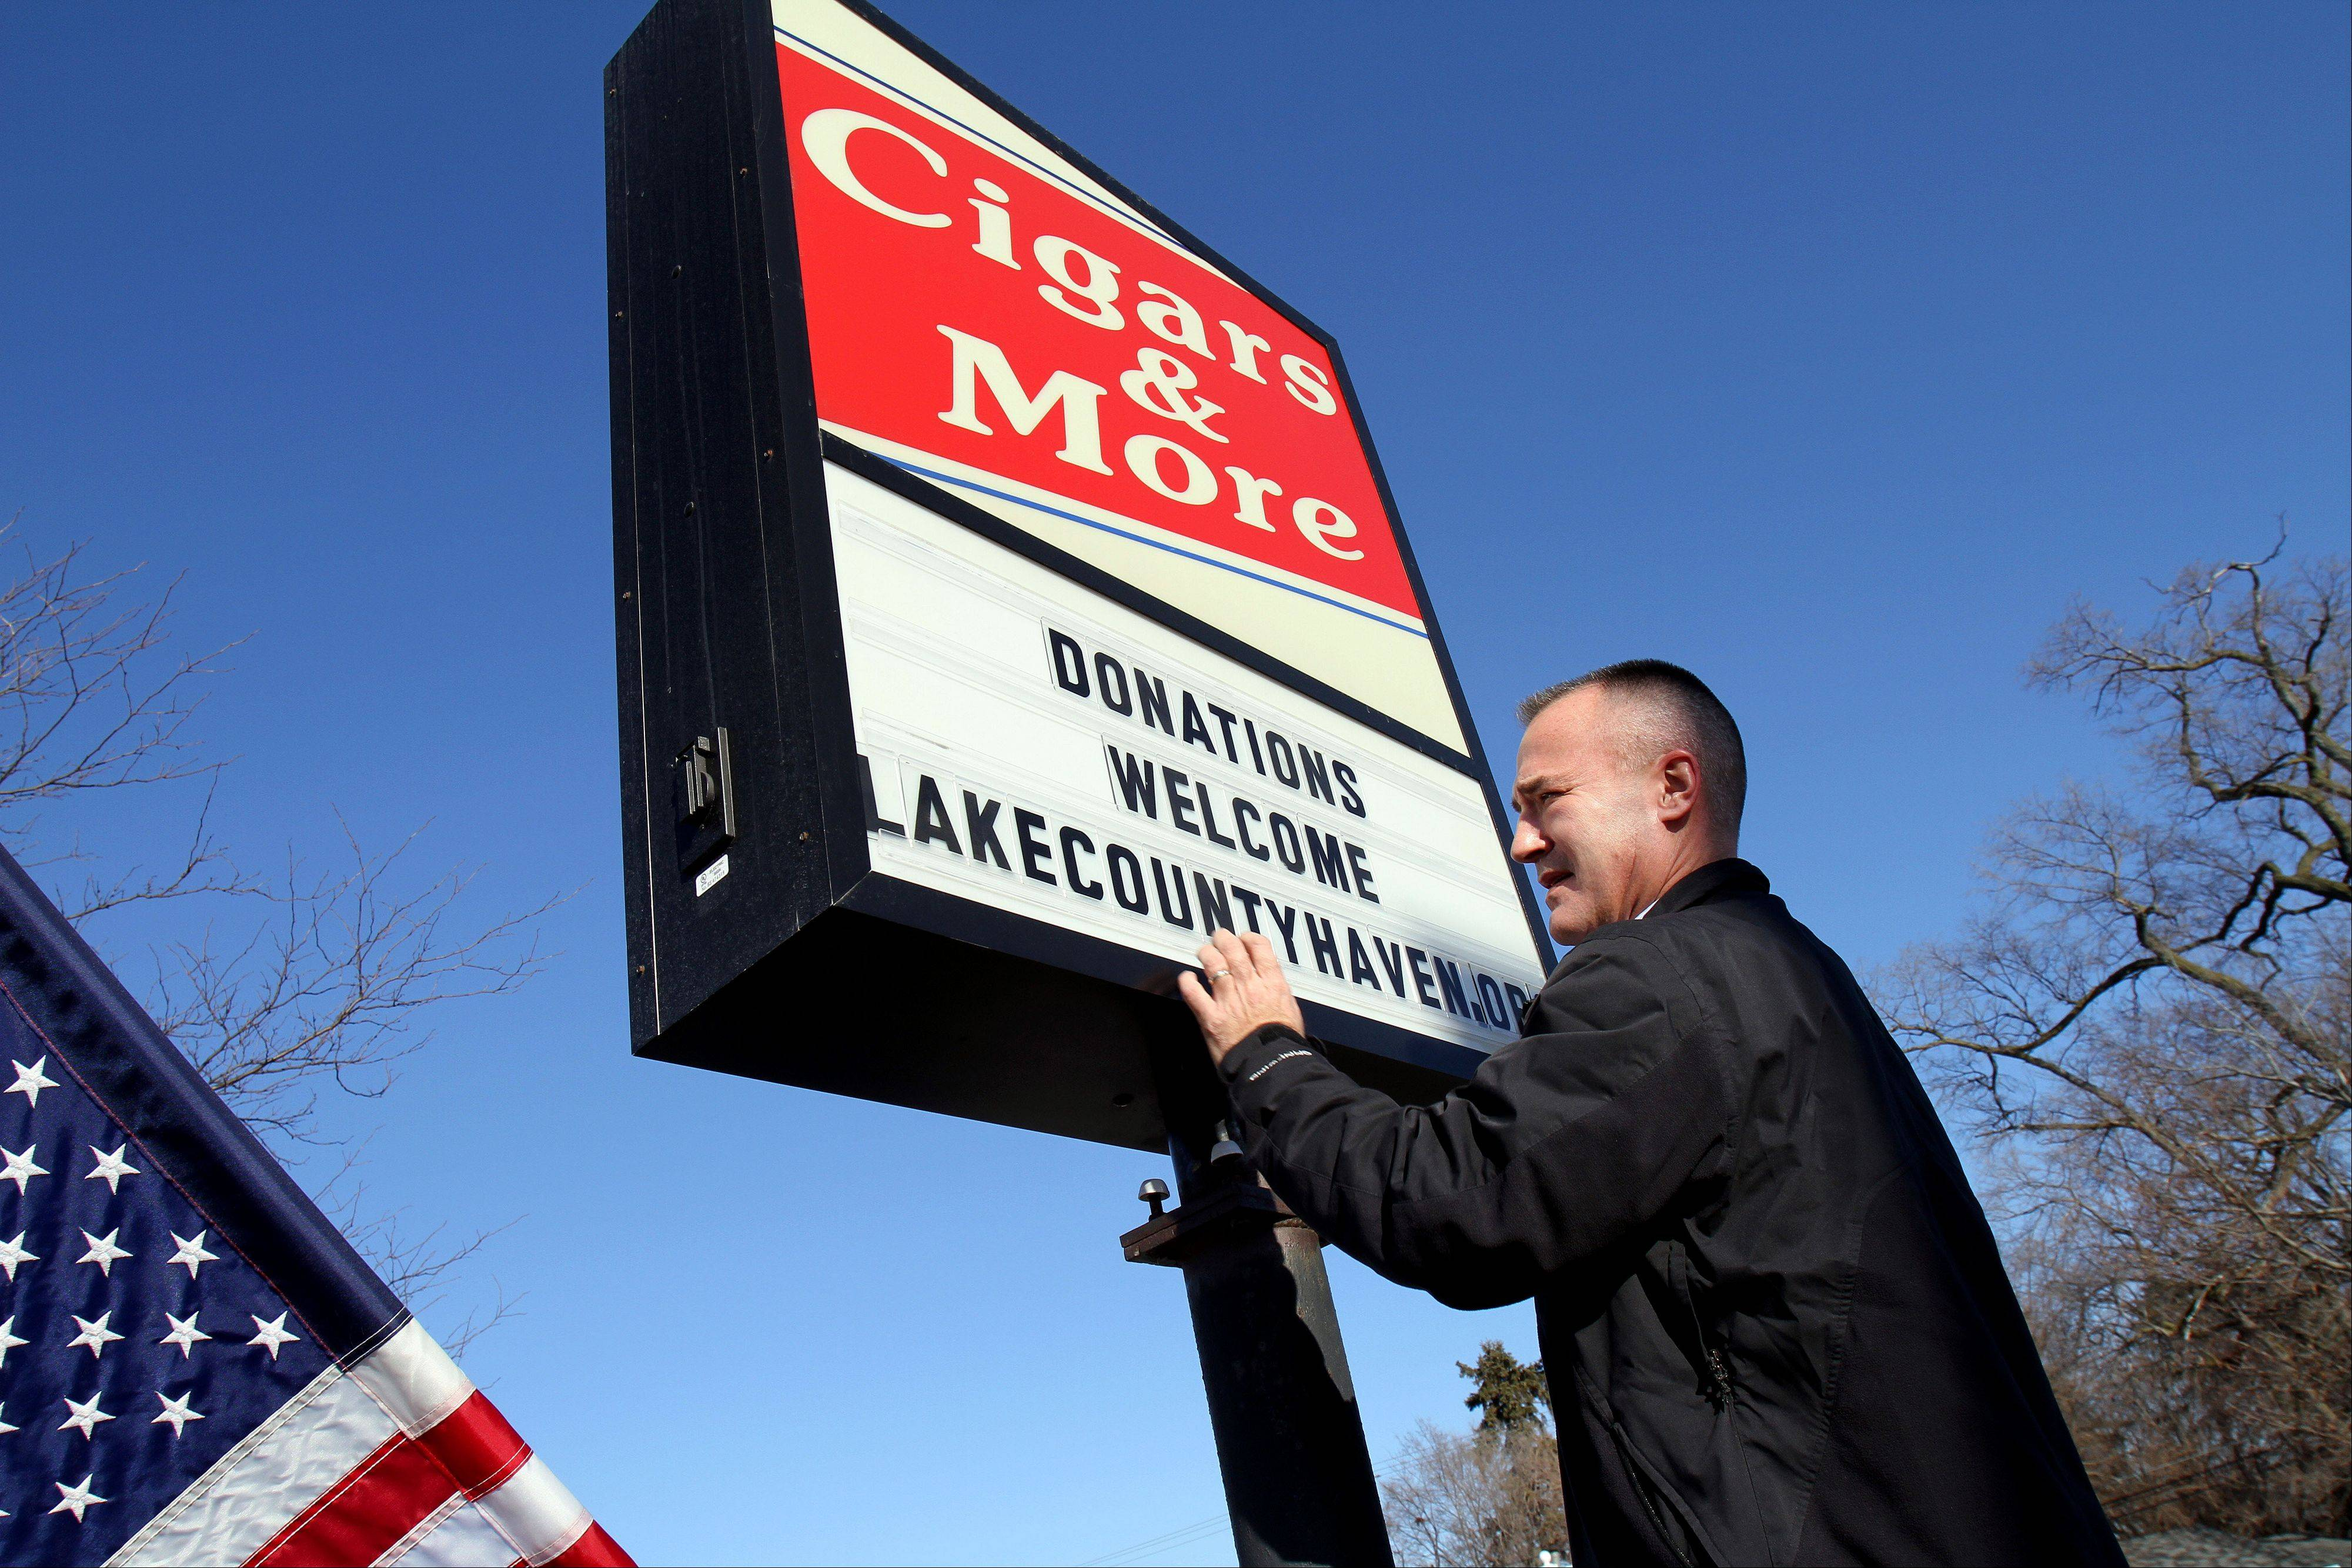 Ken Neumann posts a note welcoming donations to the Lake County Haven on the sign of his cigar shop in Libertyville.